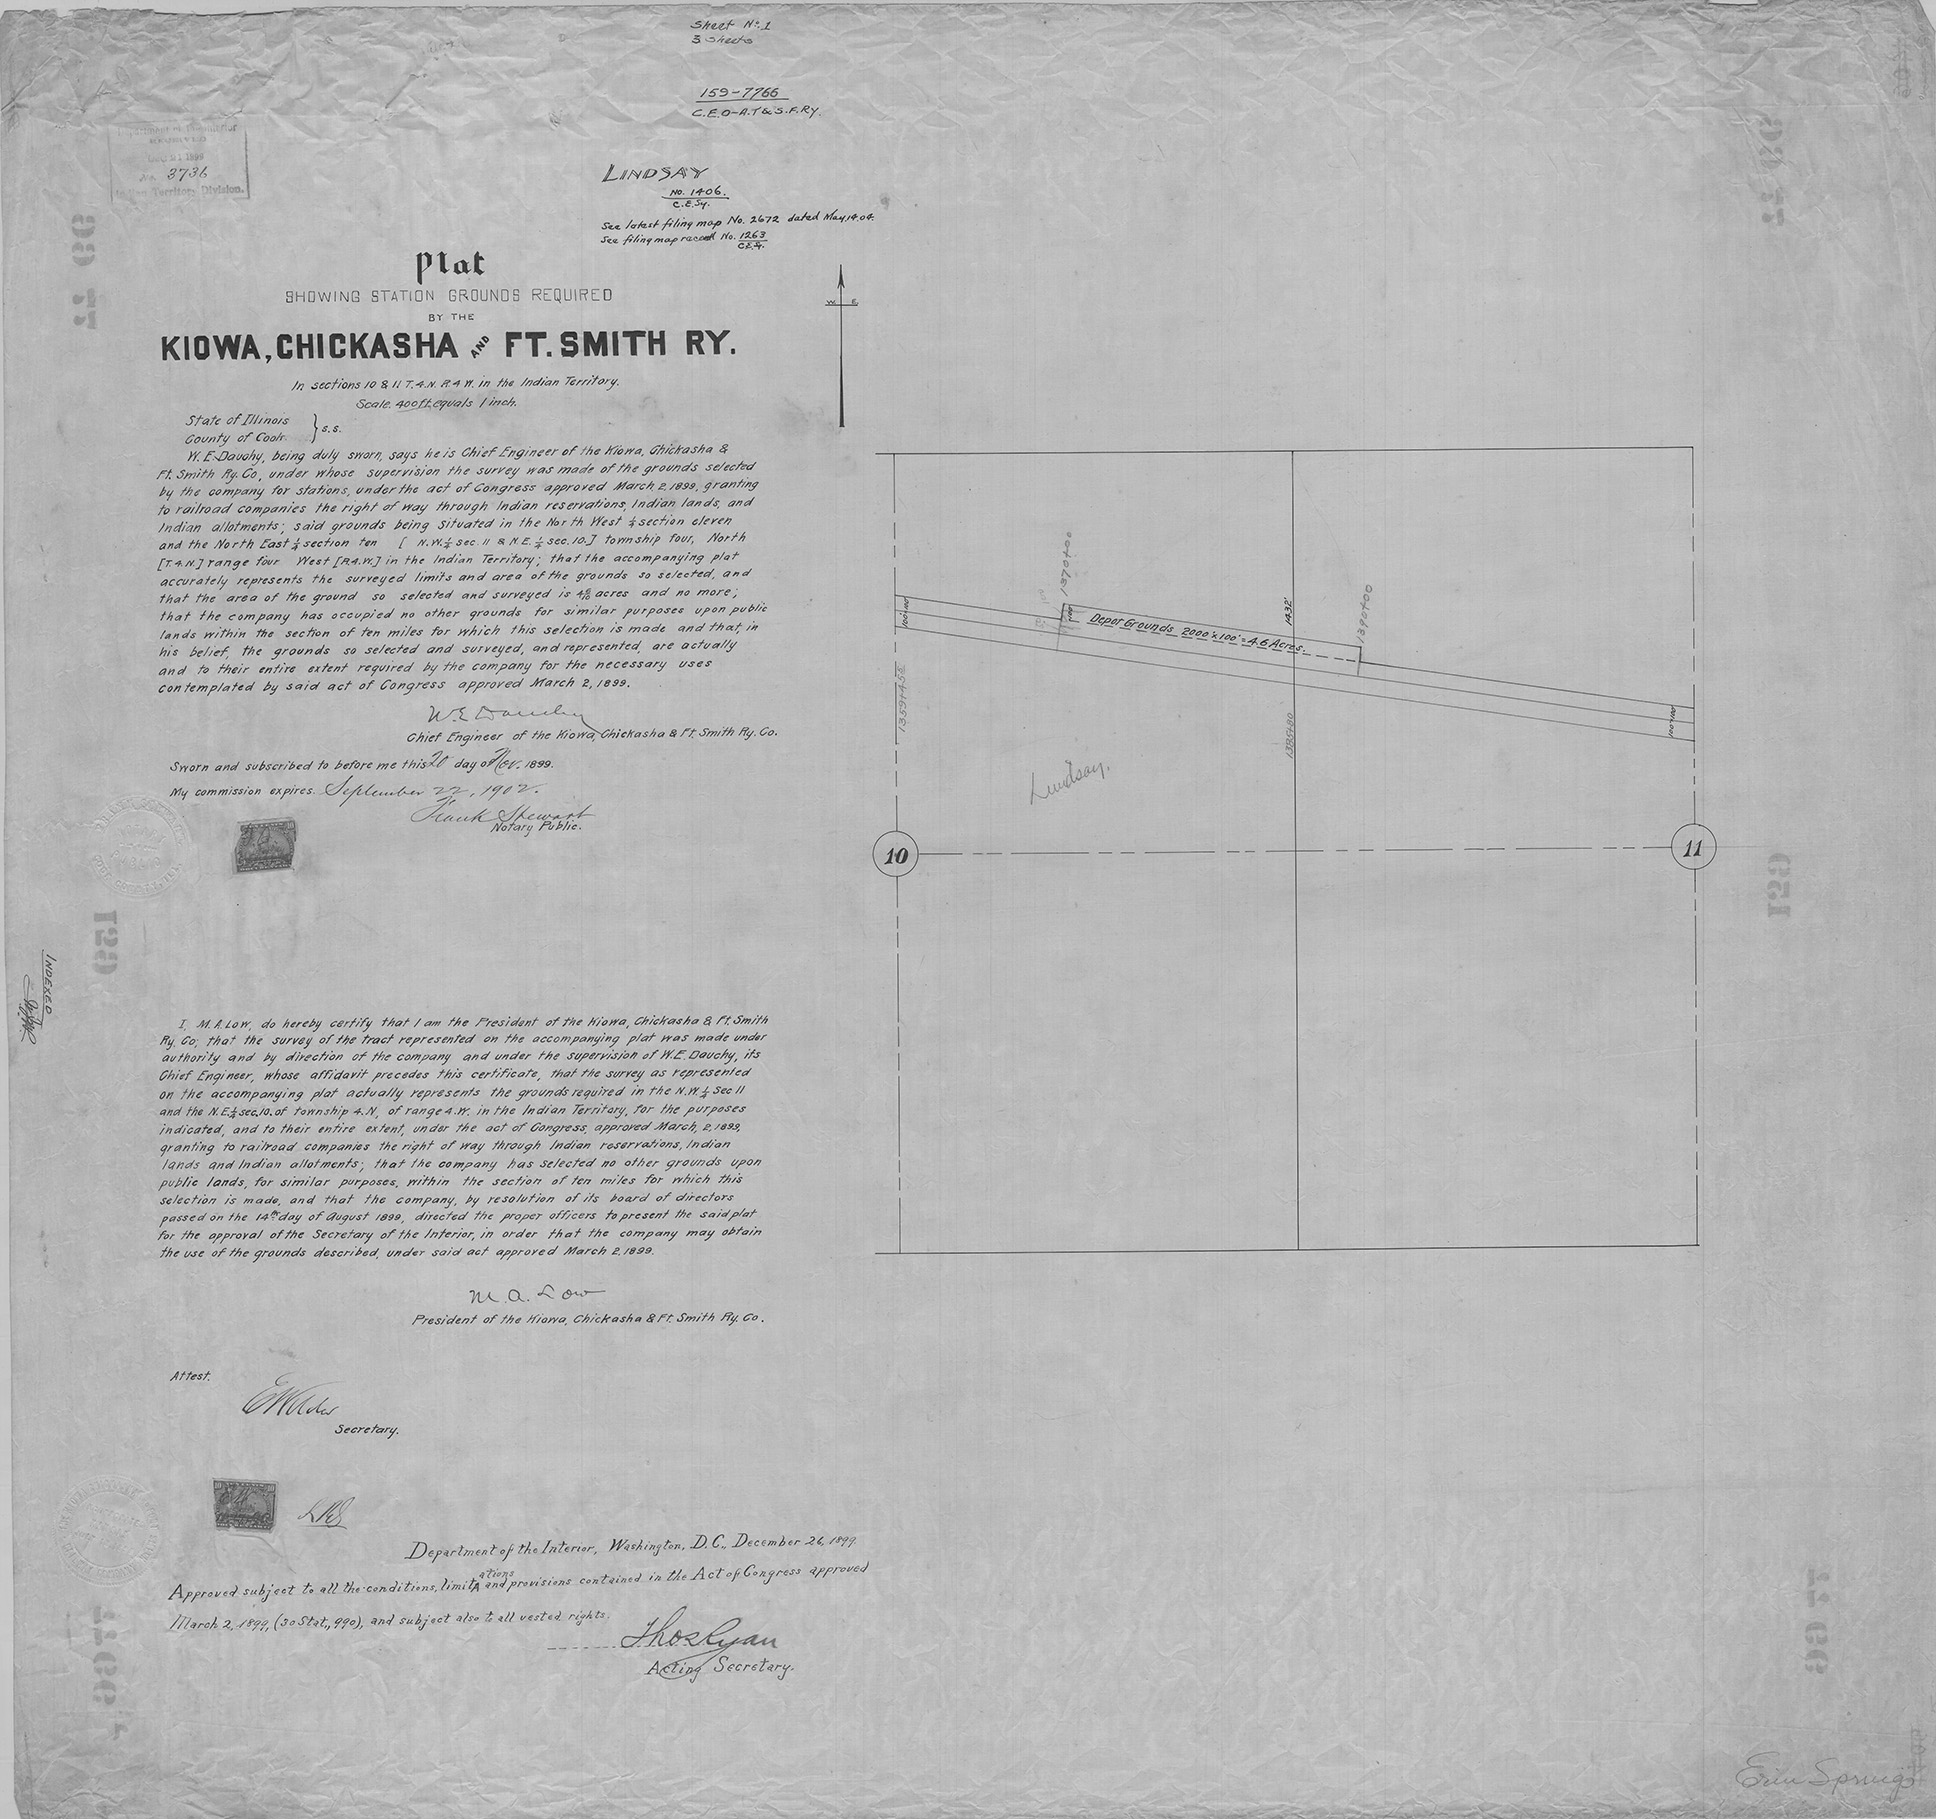 A filing map showing land claimed under an act of Congress in March 1899 and the plat for a train station in Cook County, Ill. A plat map shows the divisions of a piece of land by streets and blocks.